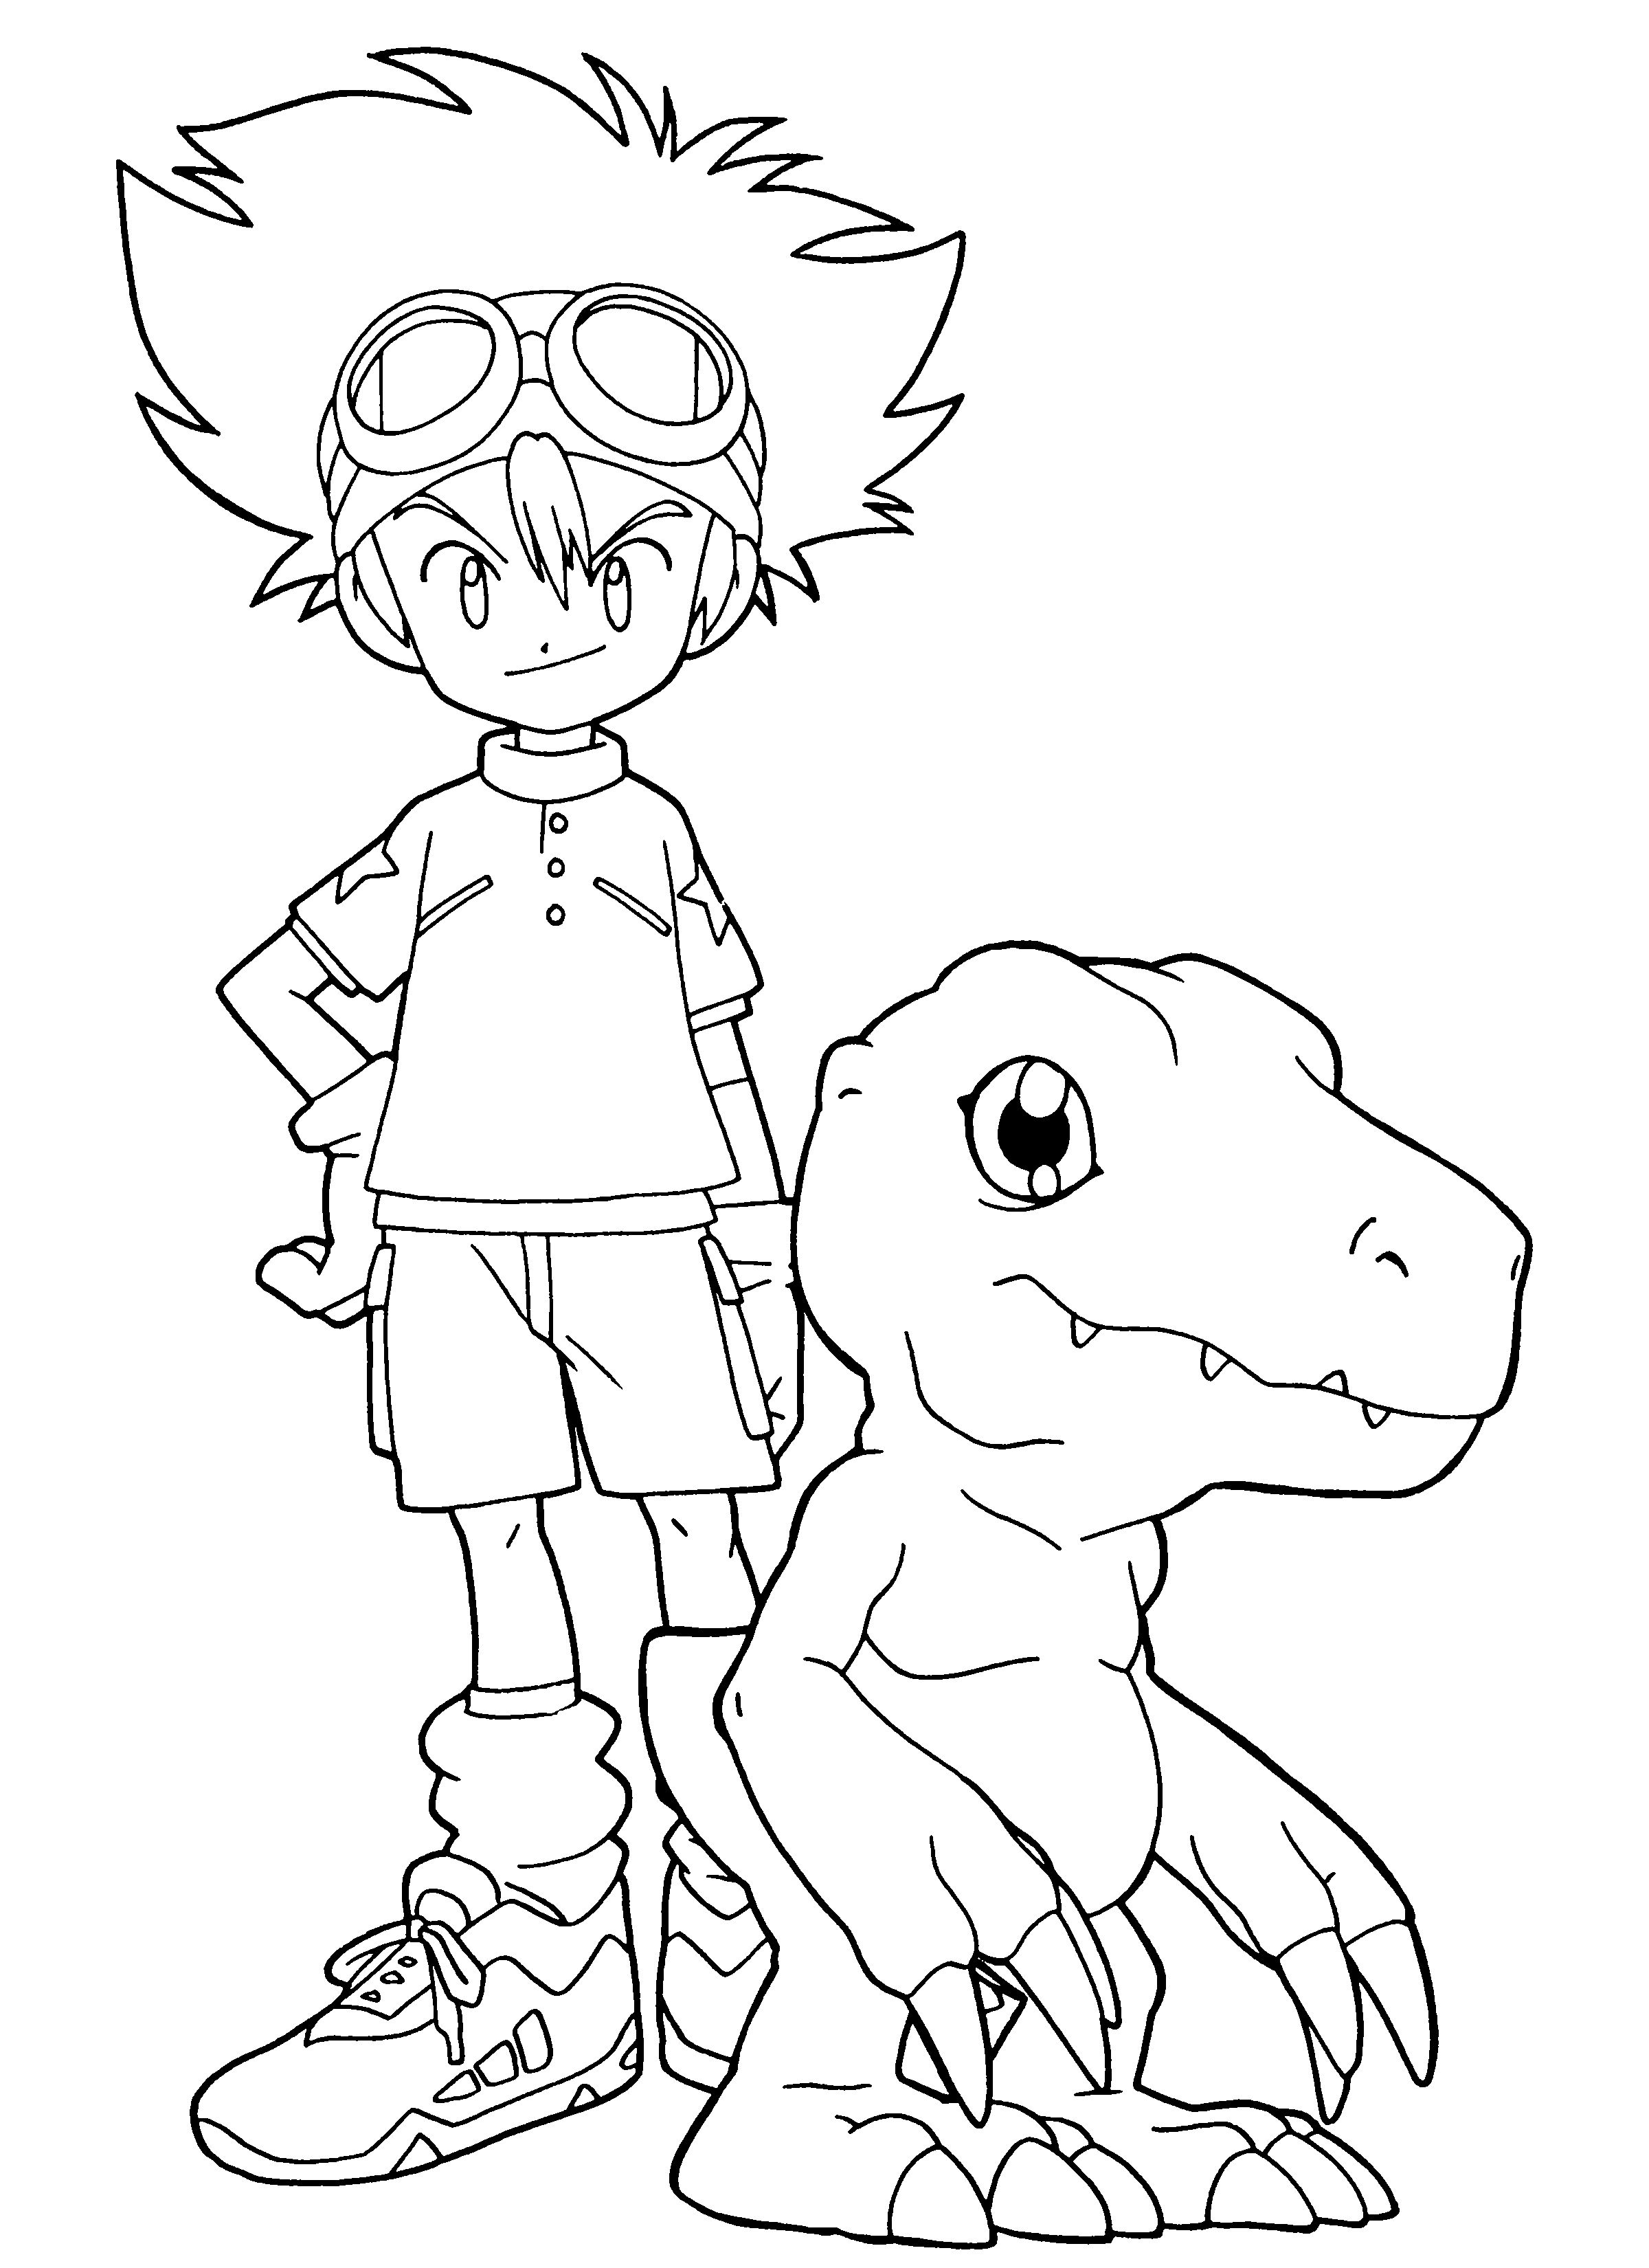 Digimon Fusion Coloring Pages To Print Cute Coloring Pages Cartoon Coloring Pages Love Coloring Pages